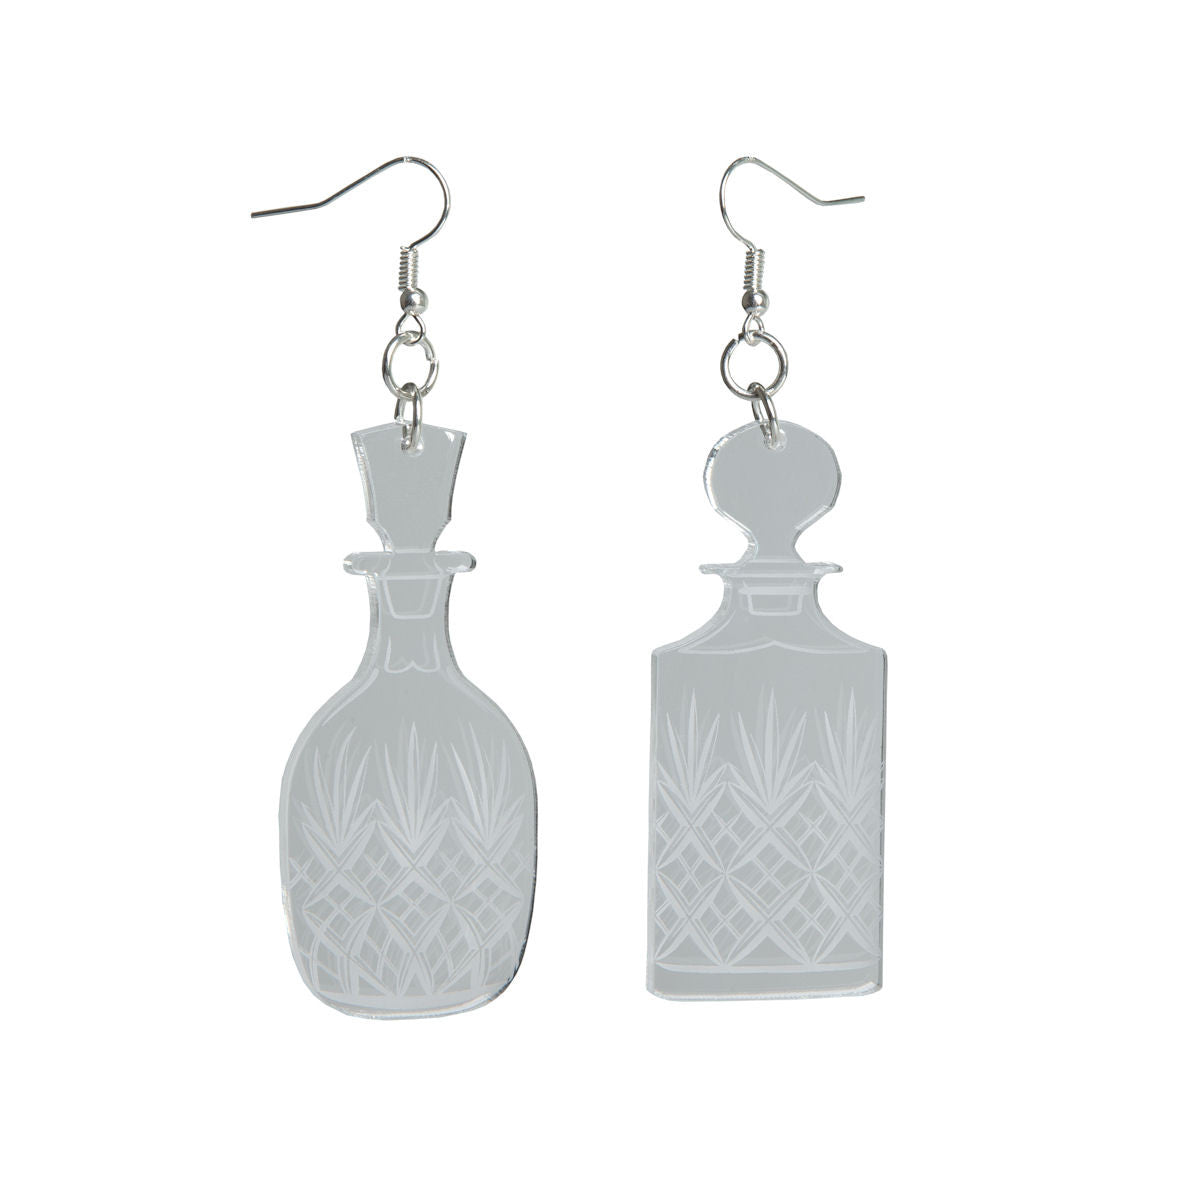 Sugar & Vice Decanter Earrings